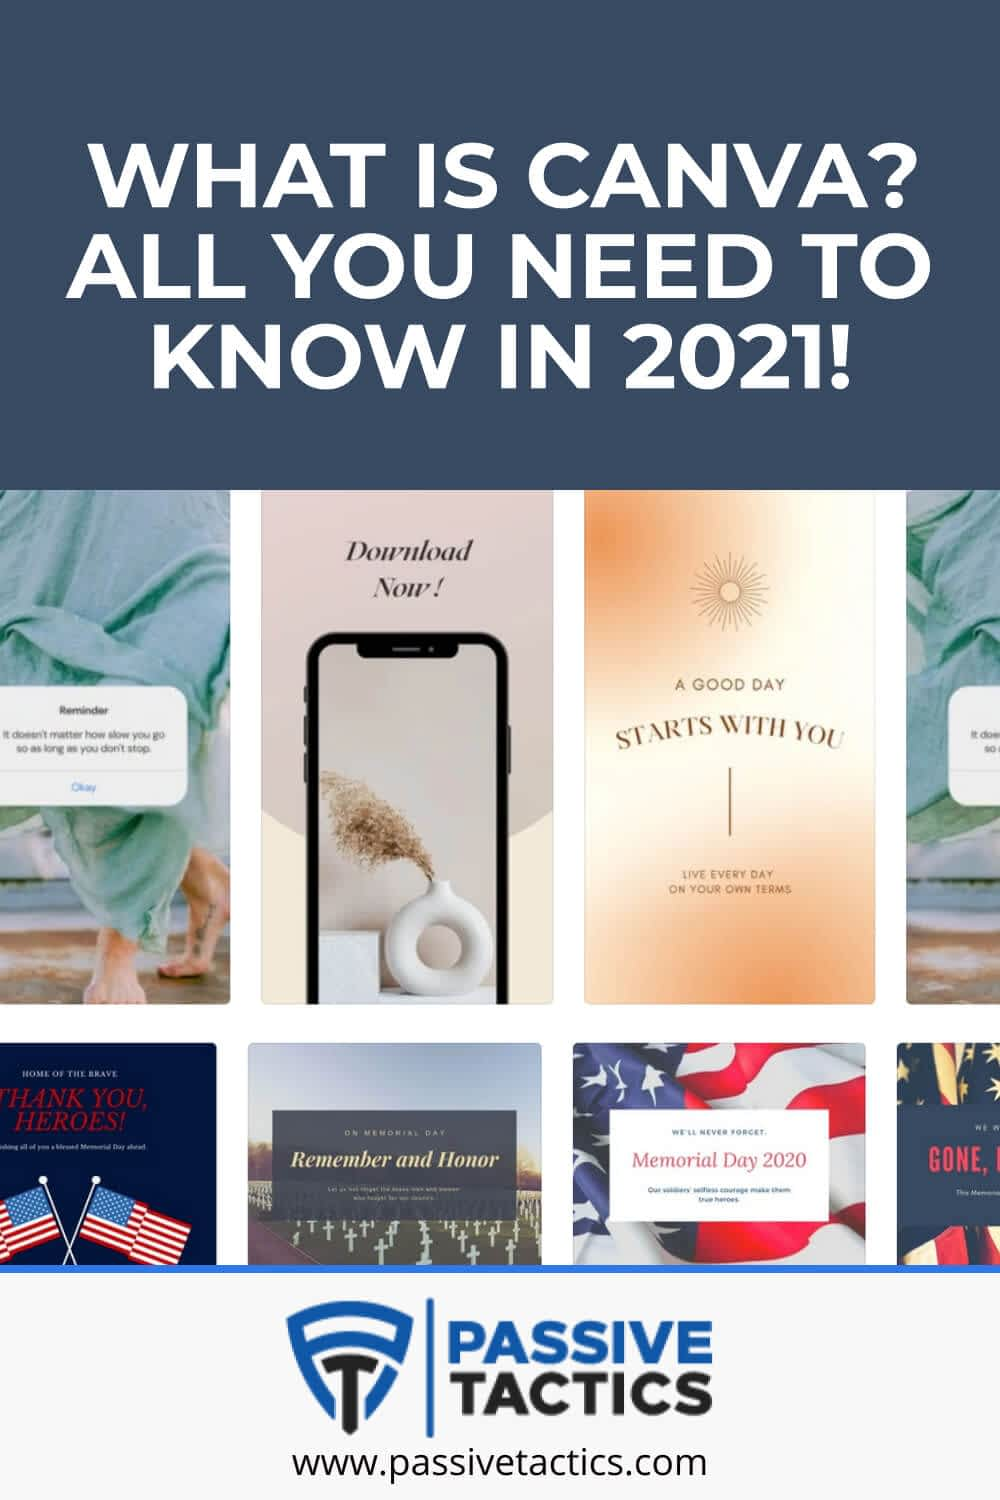 What Is Canva? All You Need To Know In 2021!